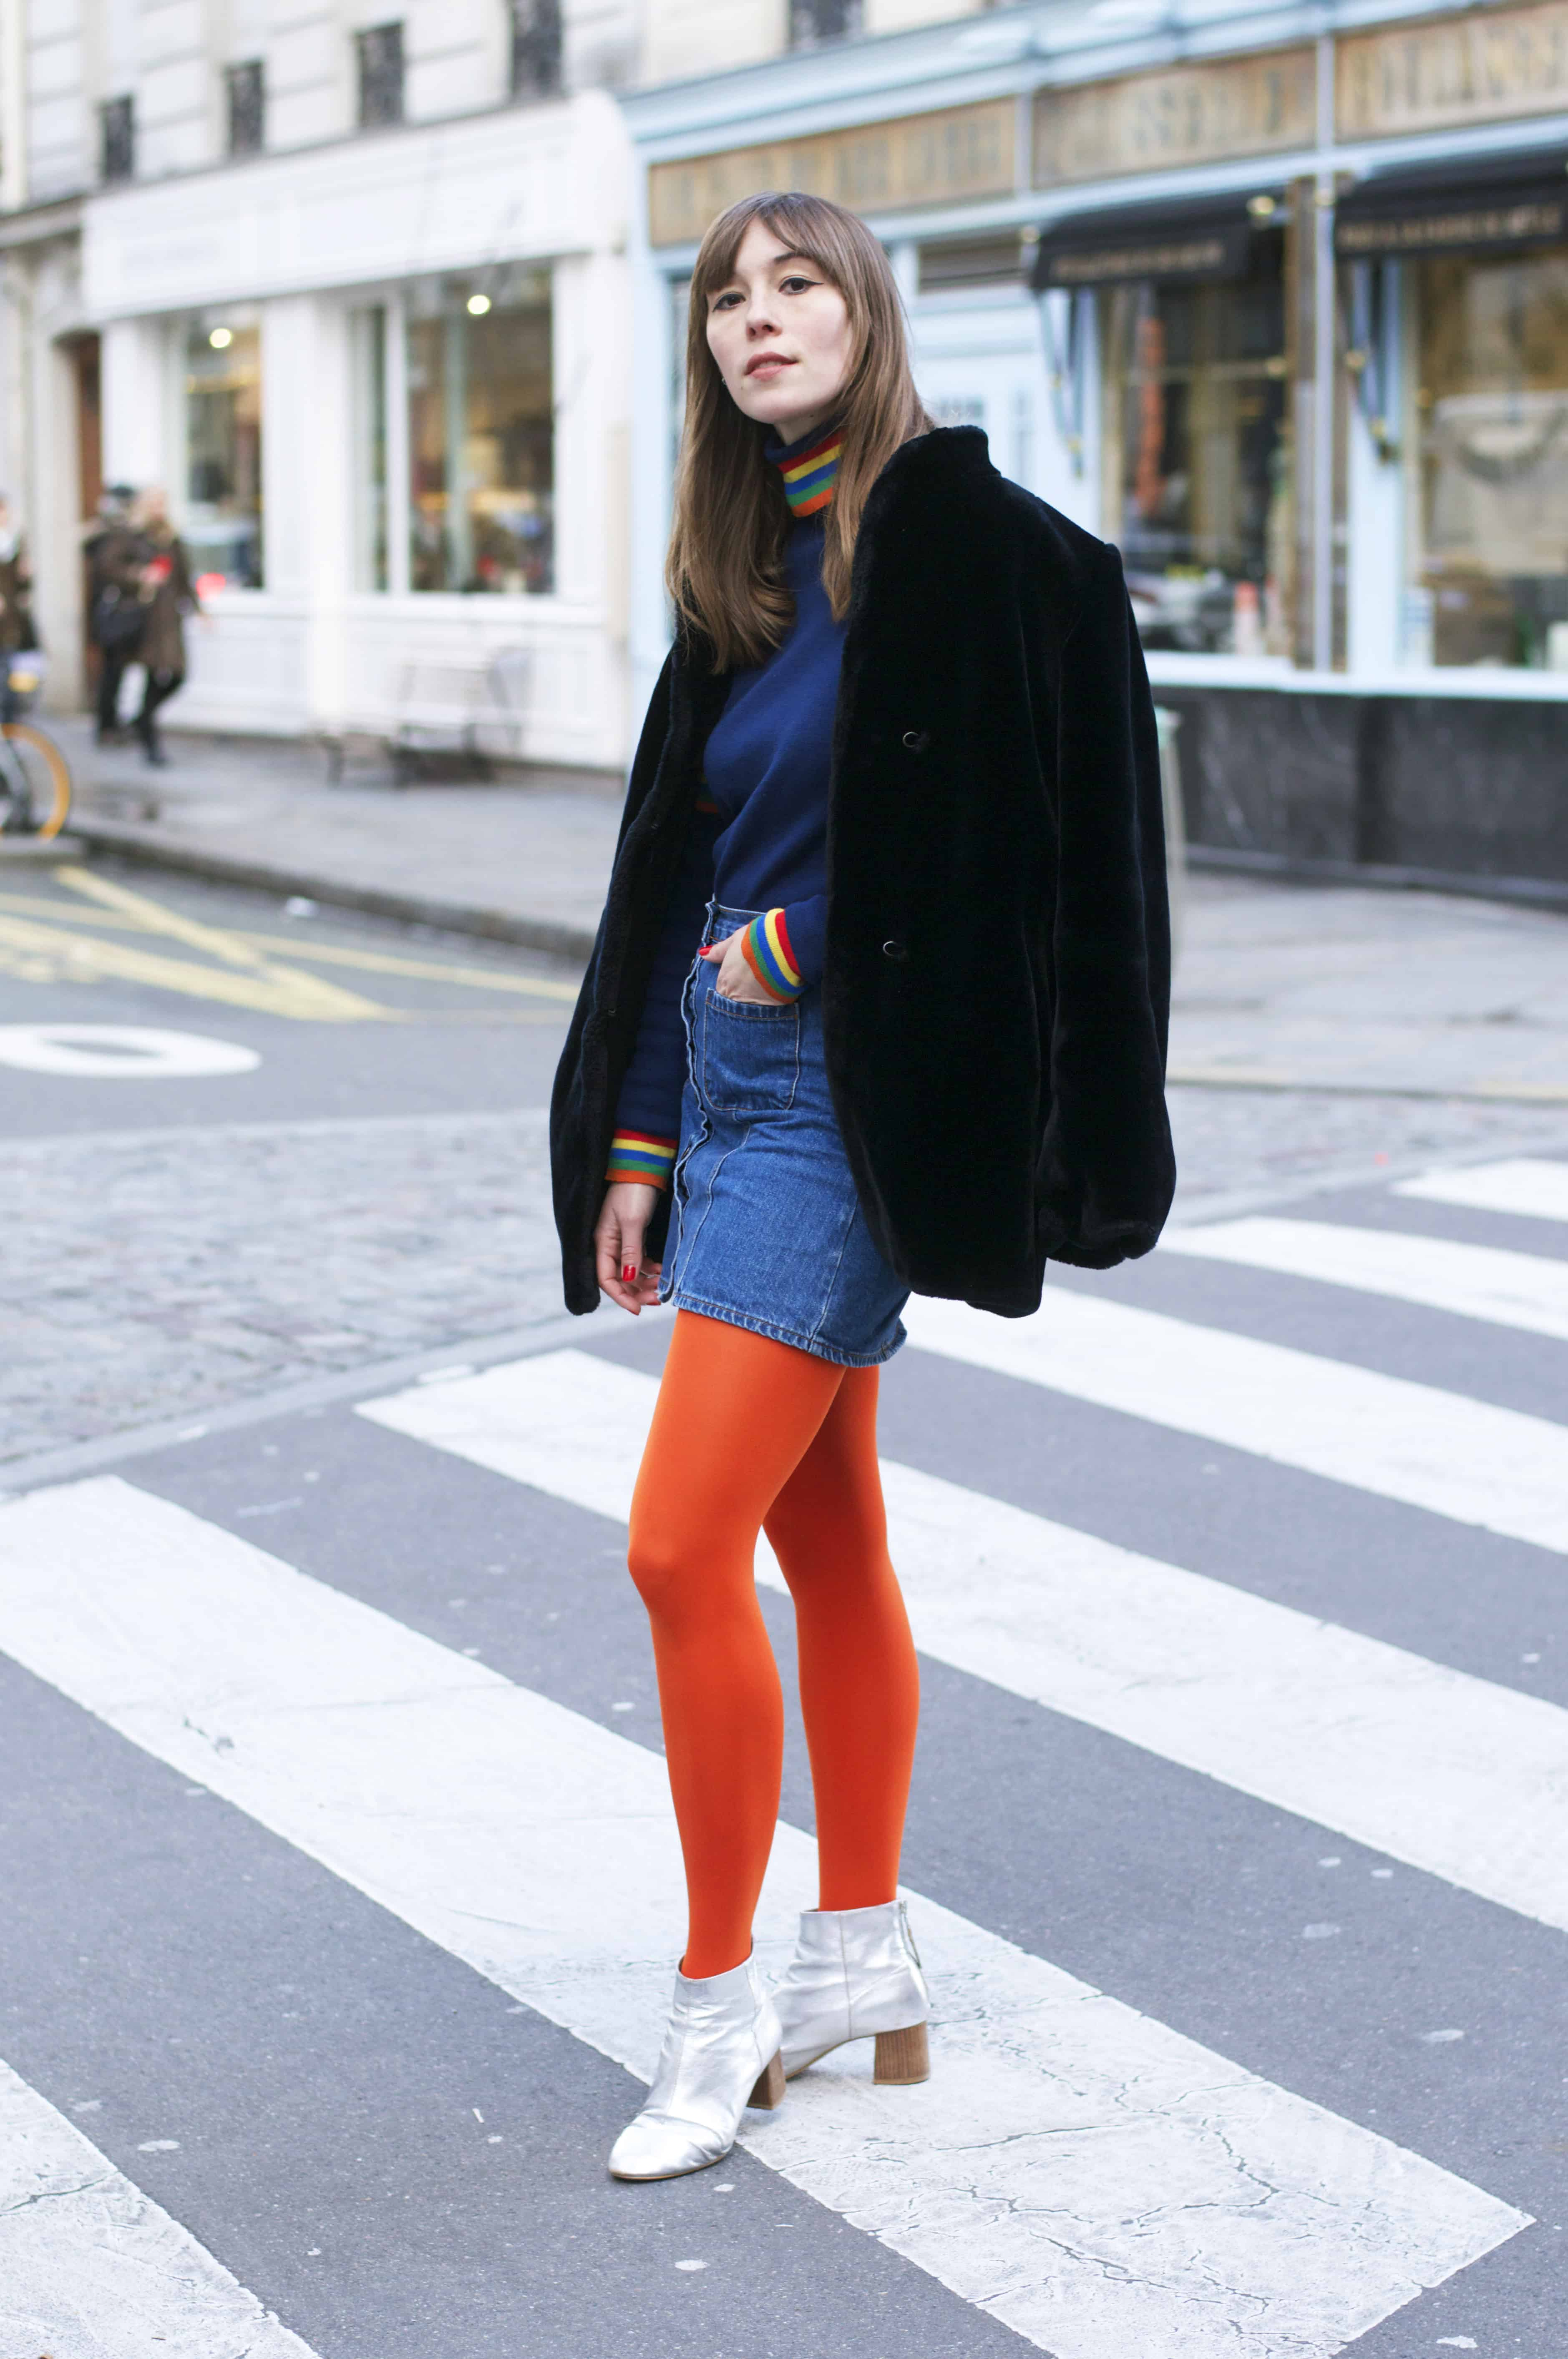 Wearing bold orange tights and black faux fur coat in Paris